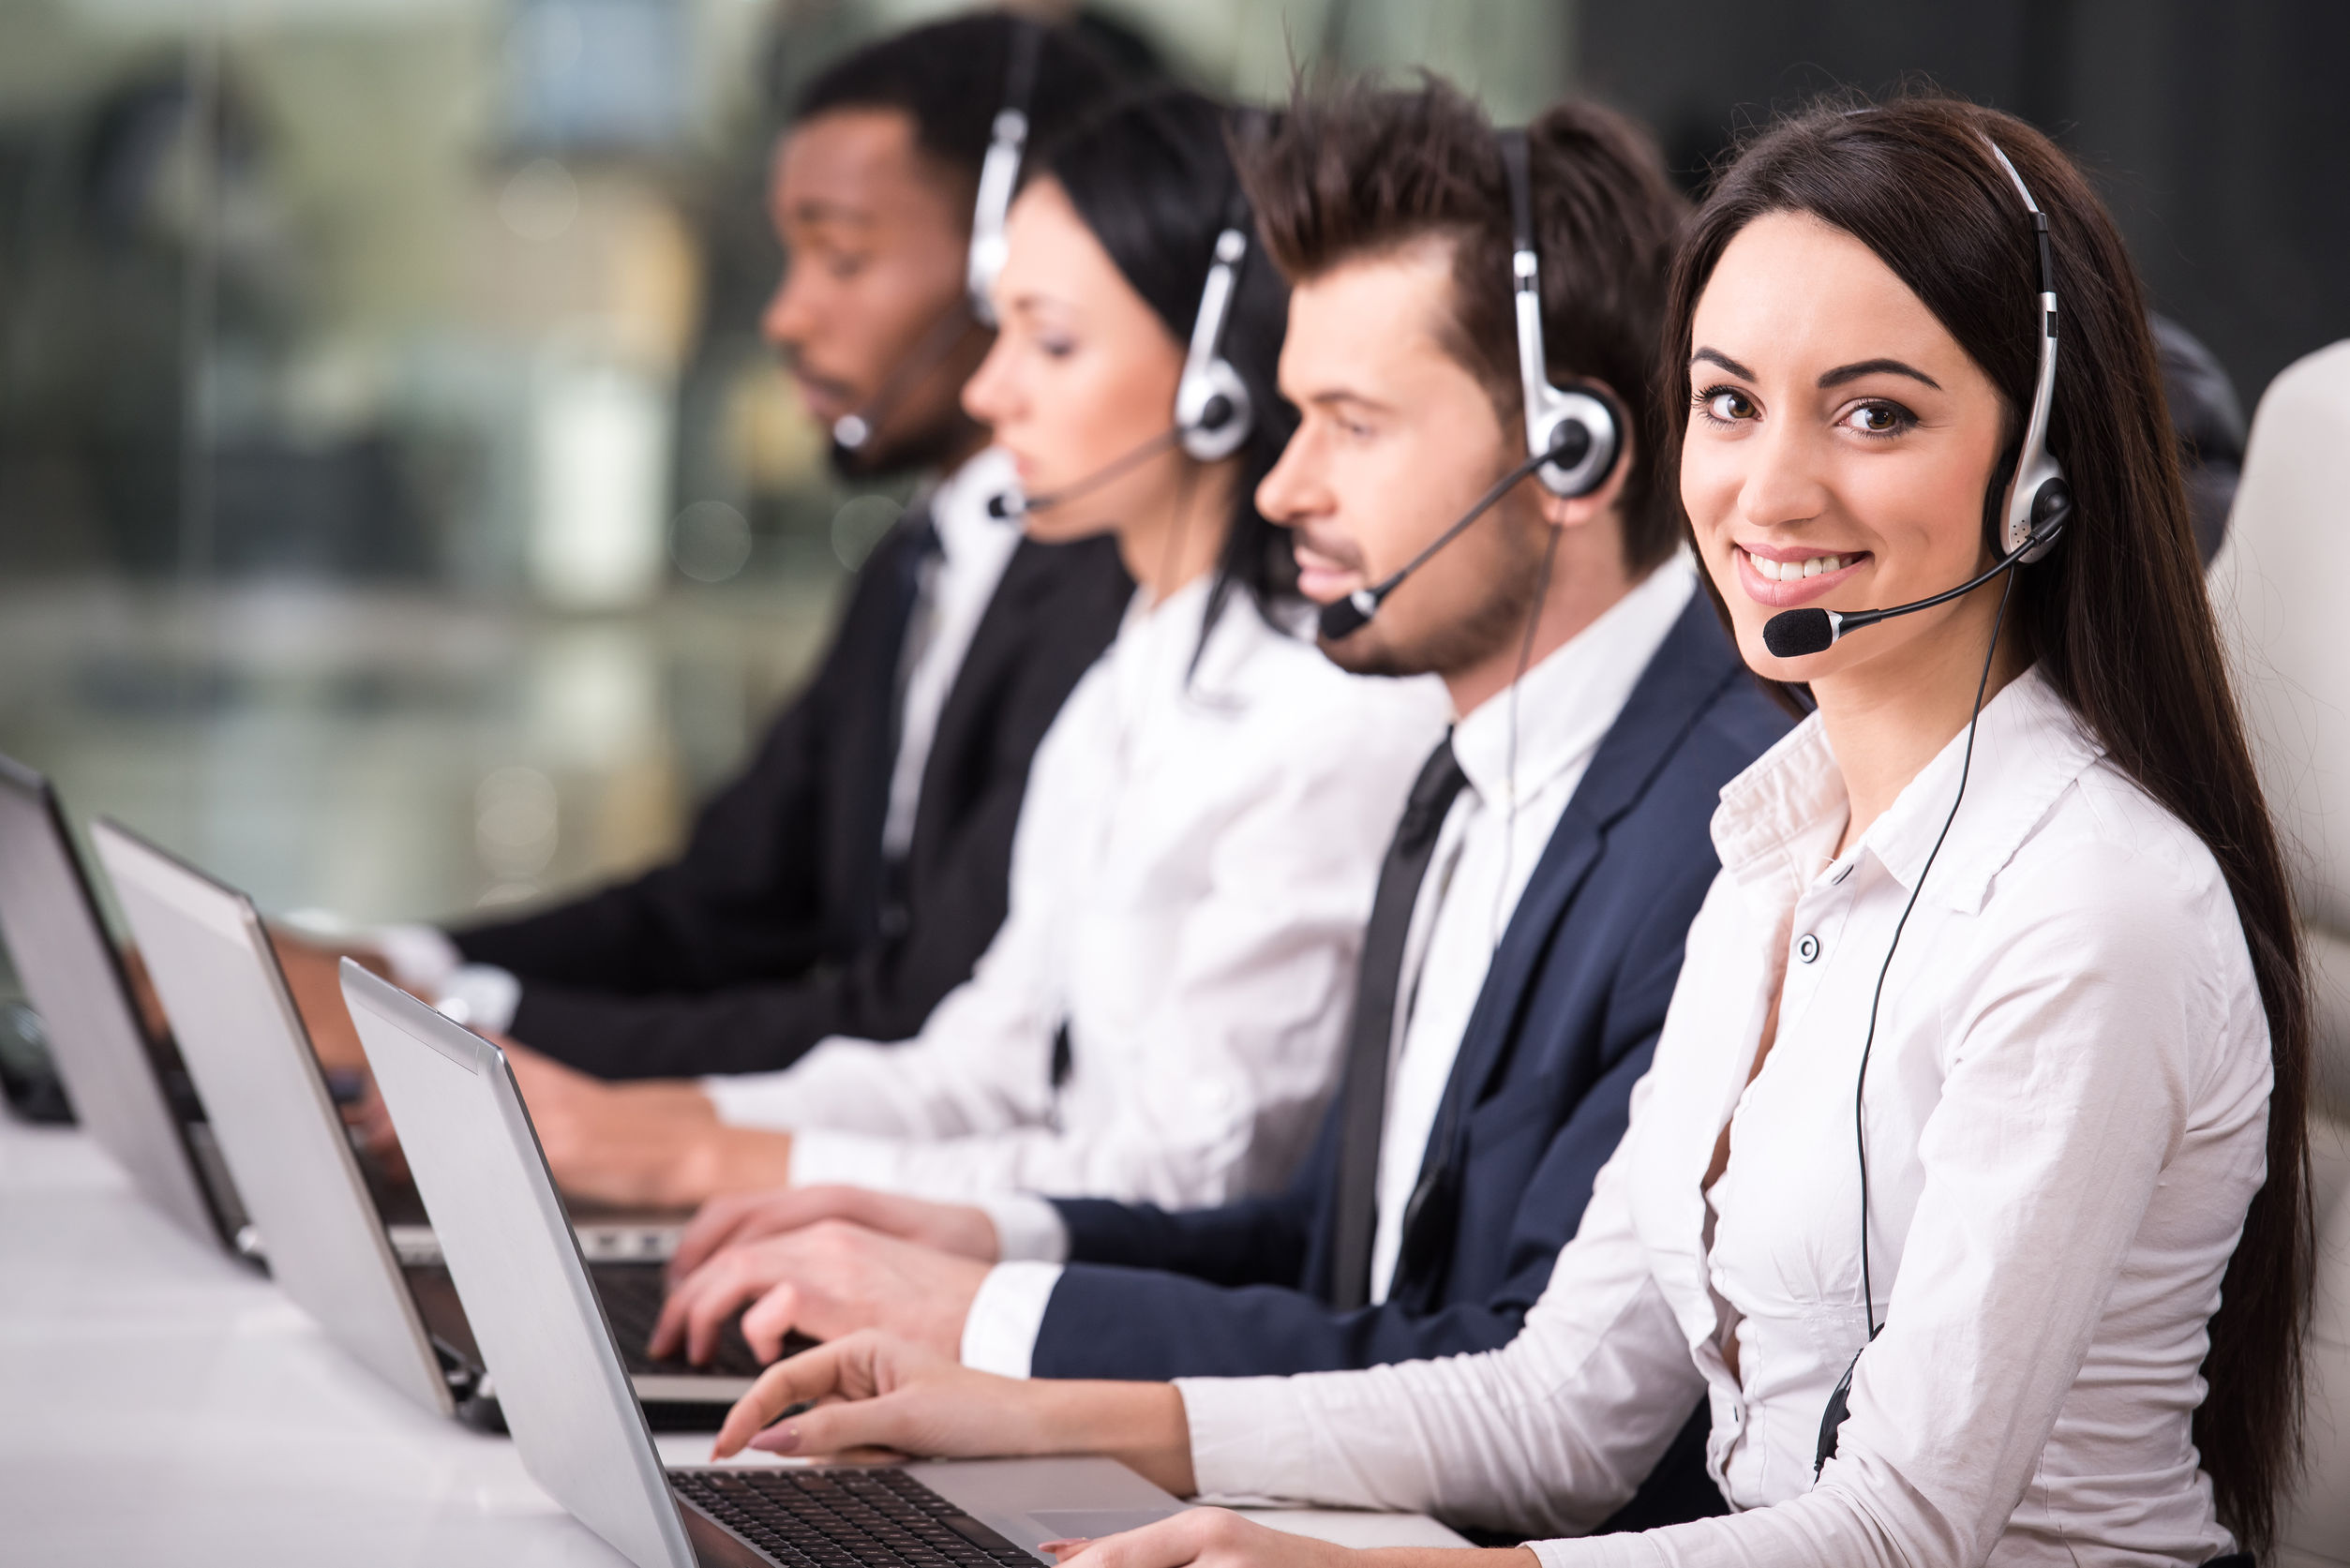 Improve Call Center Customer Service With Texting